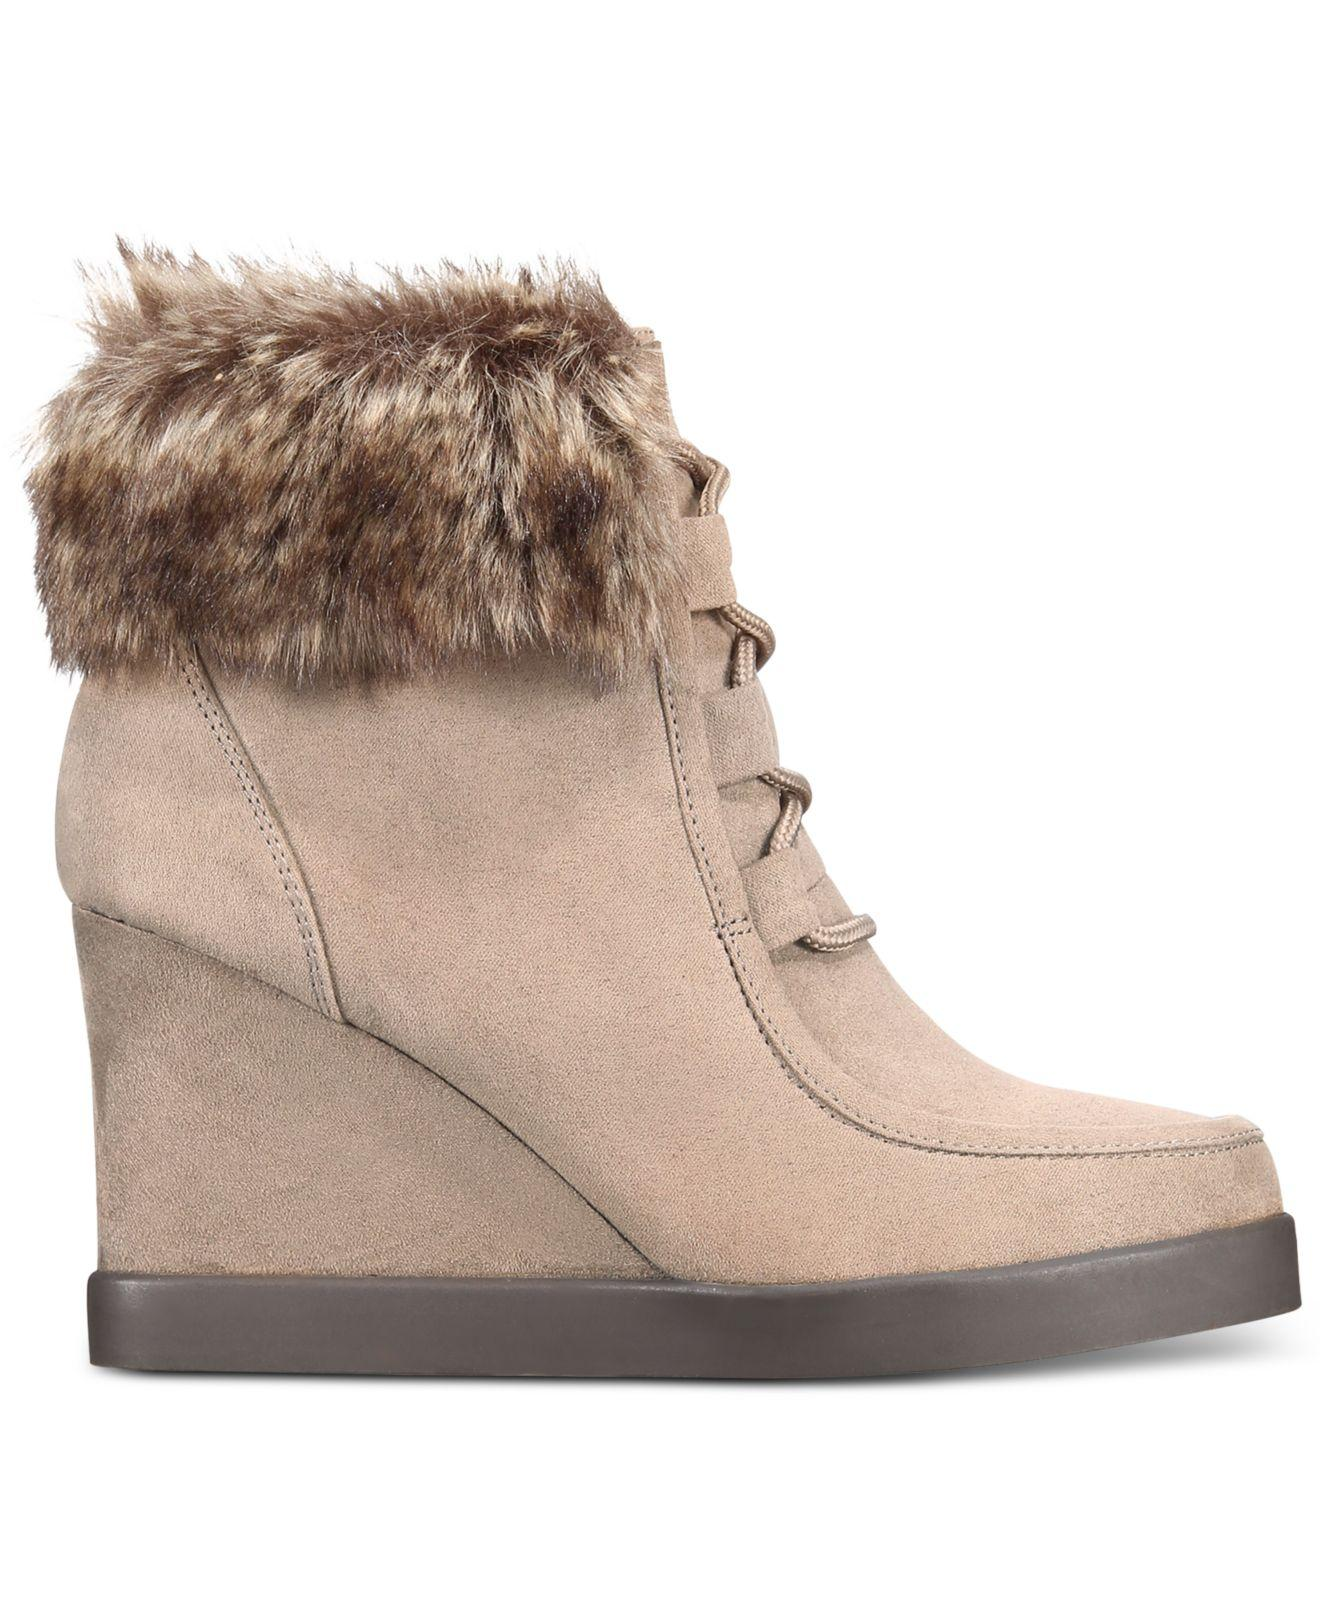 5236a910ef59 Lyst - Esprit Felice Memory Foam Wedge Booties in Brown